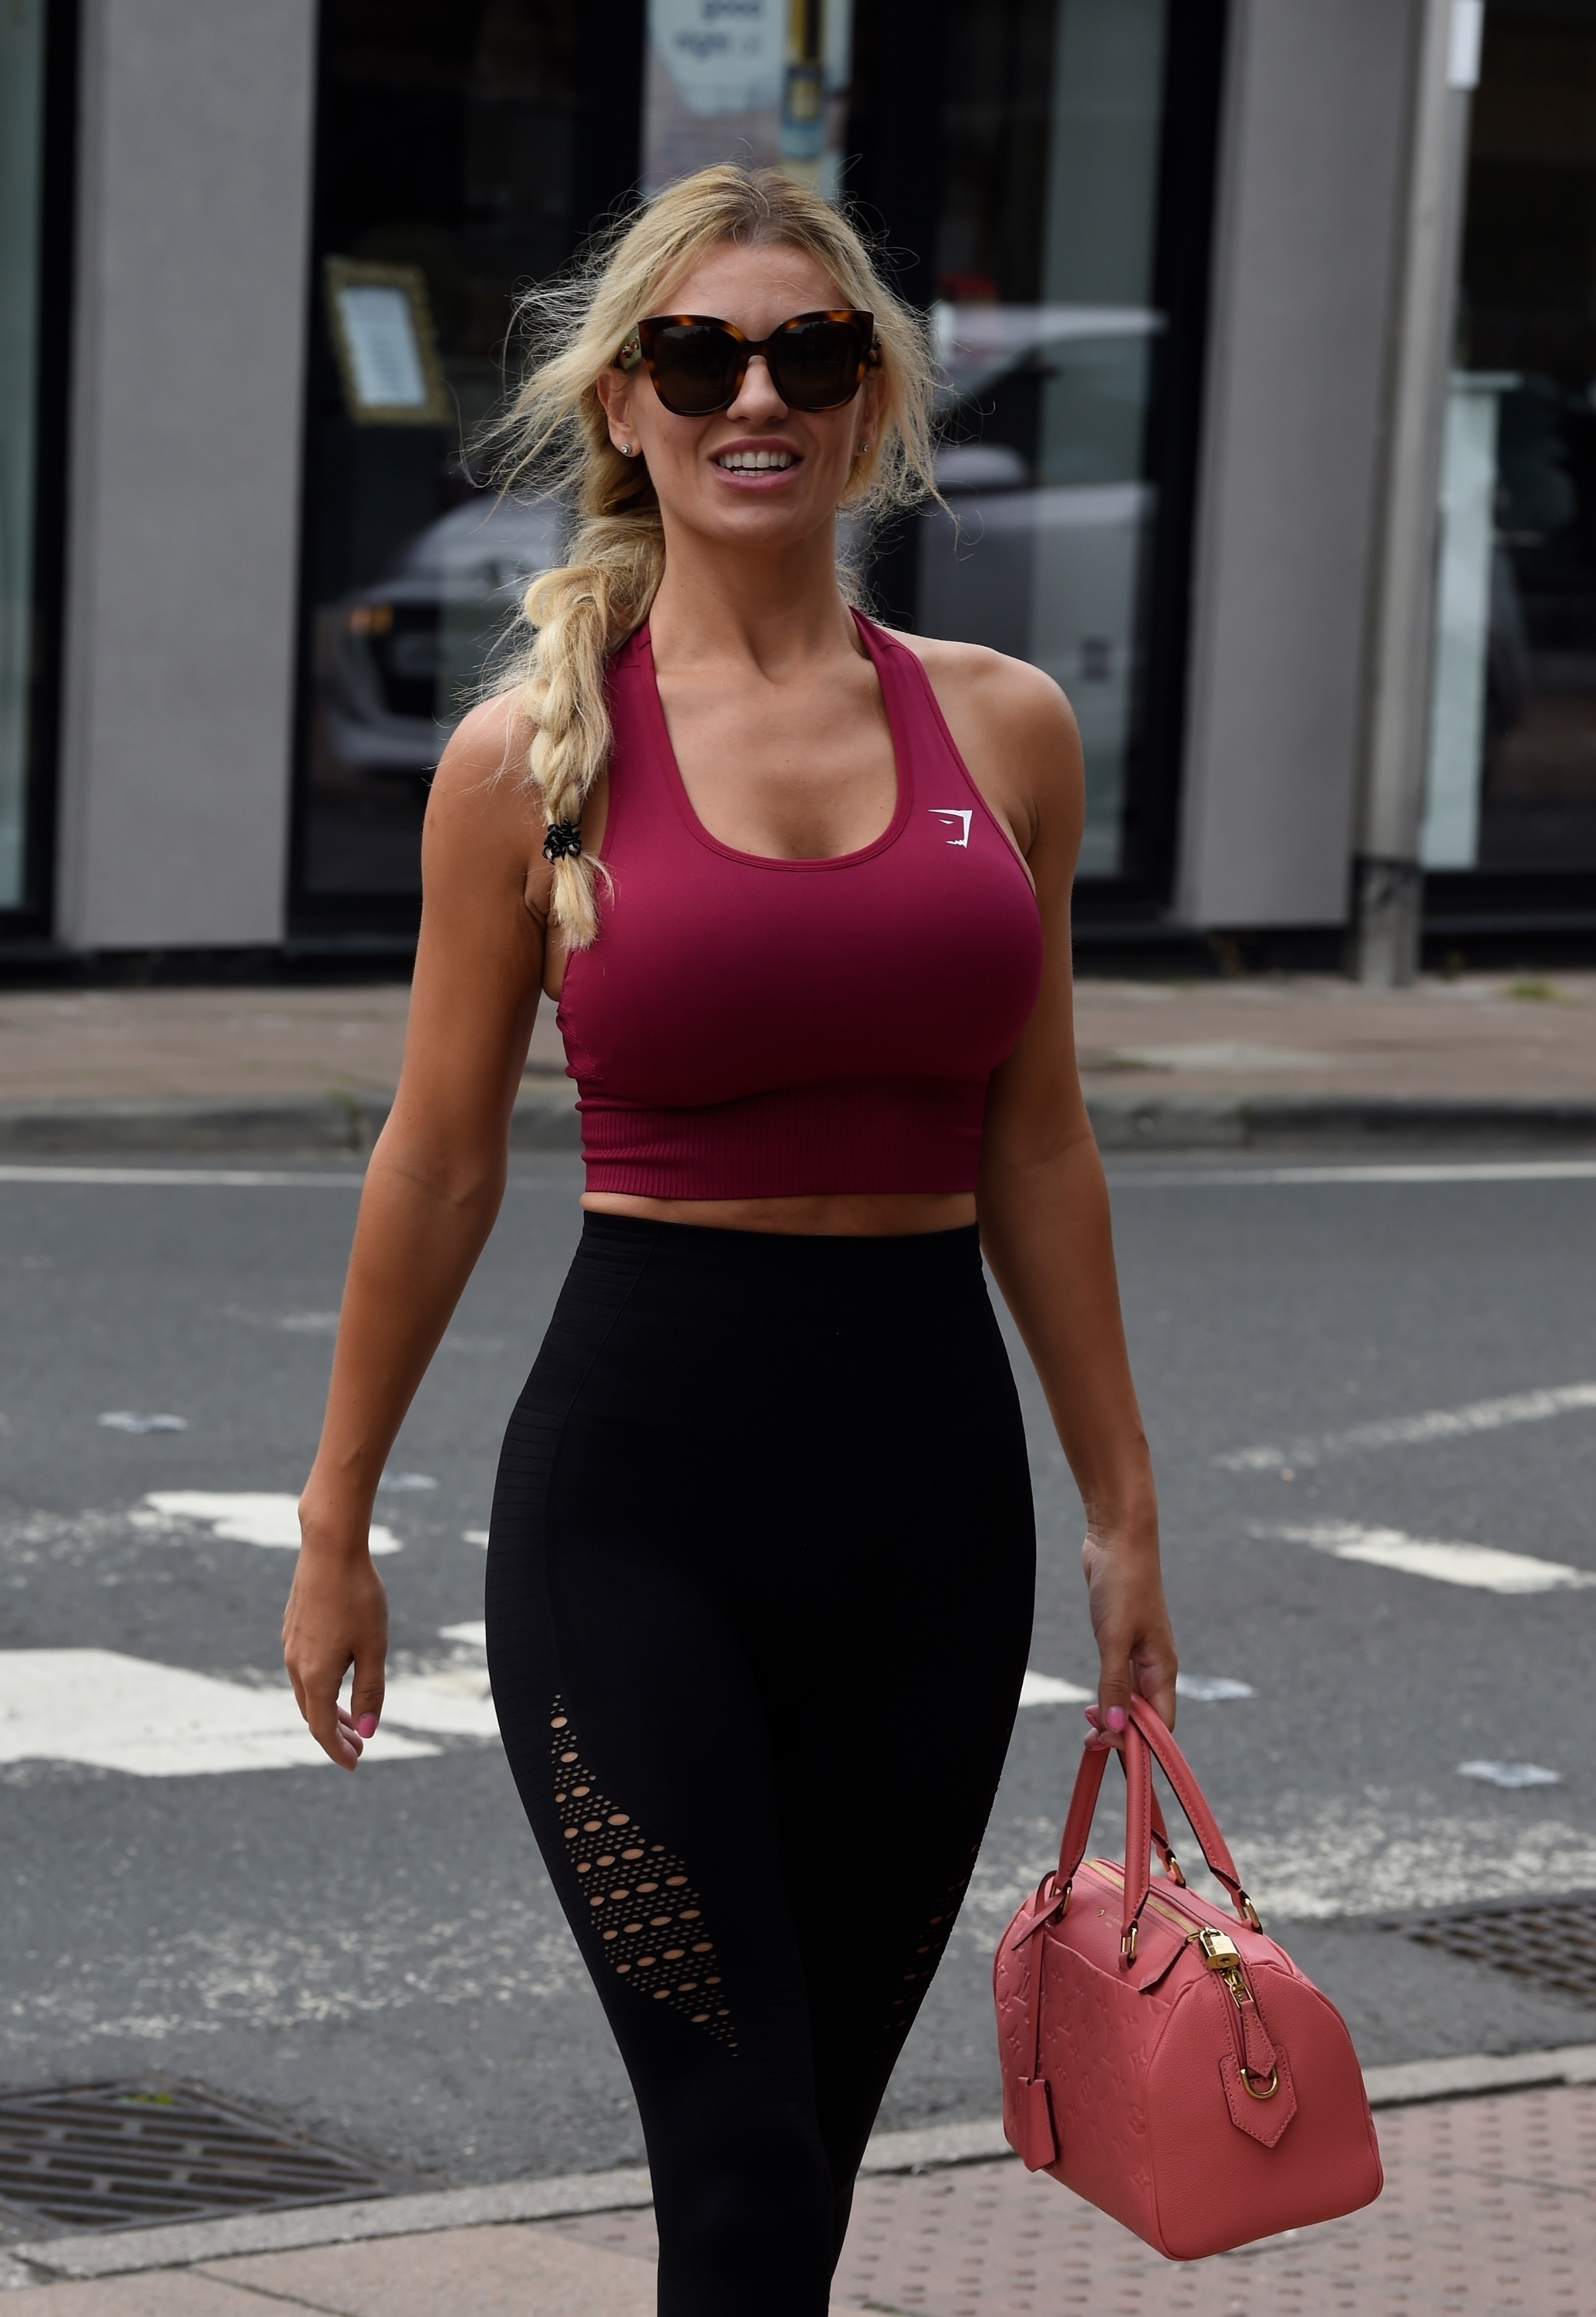 Christine McGuinness showing off her cleavage and looking